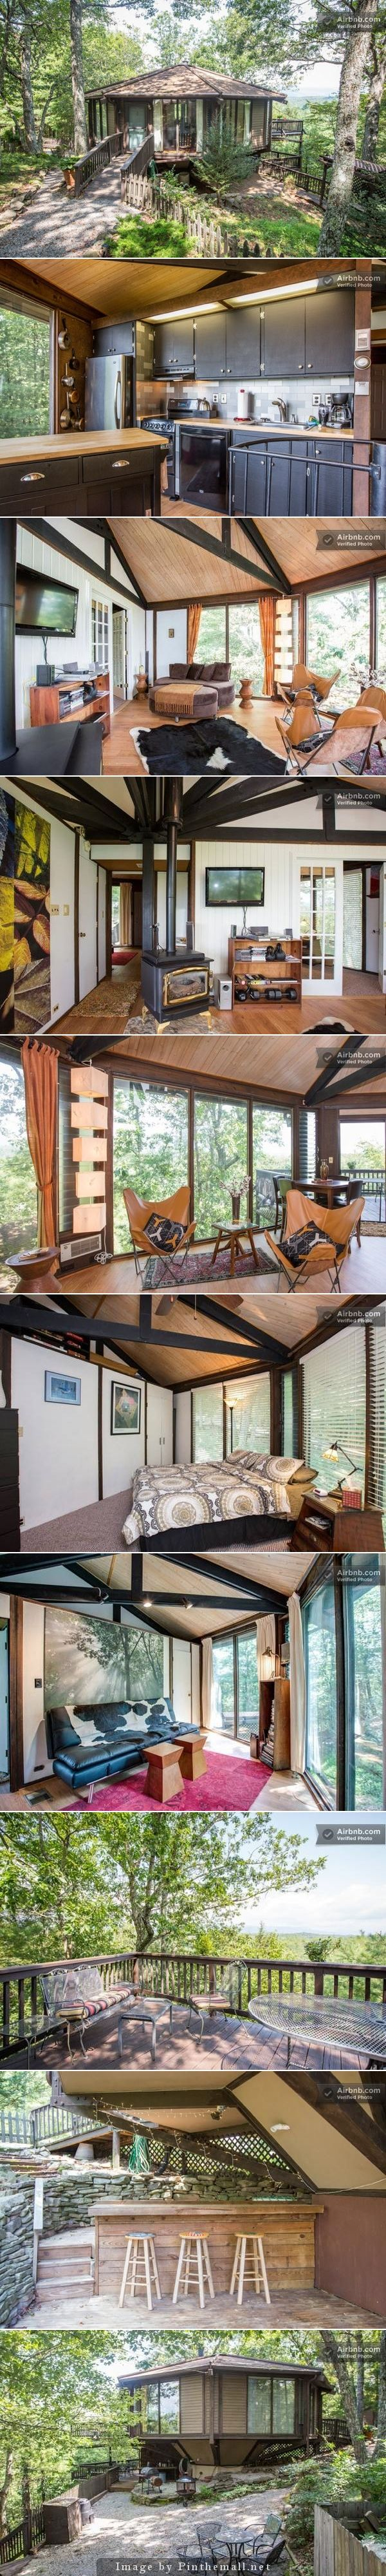 Octogonal house in west augusta! You can rent it with airbnb! https://fr.airbnb.com/rooms/1479348?af=1726391&c=direct_link